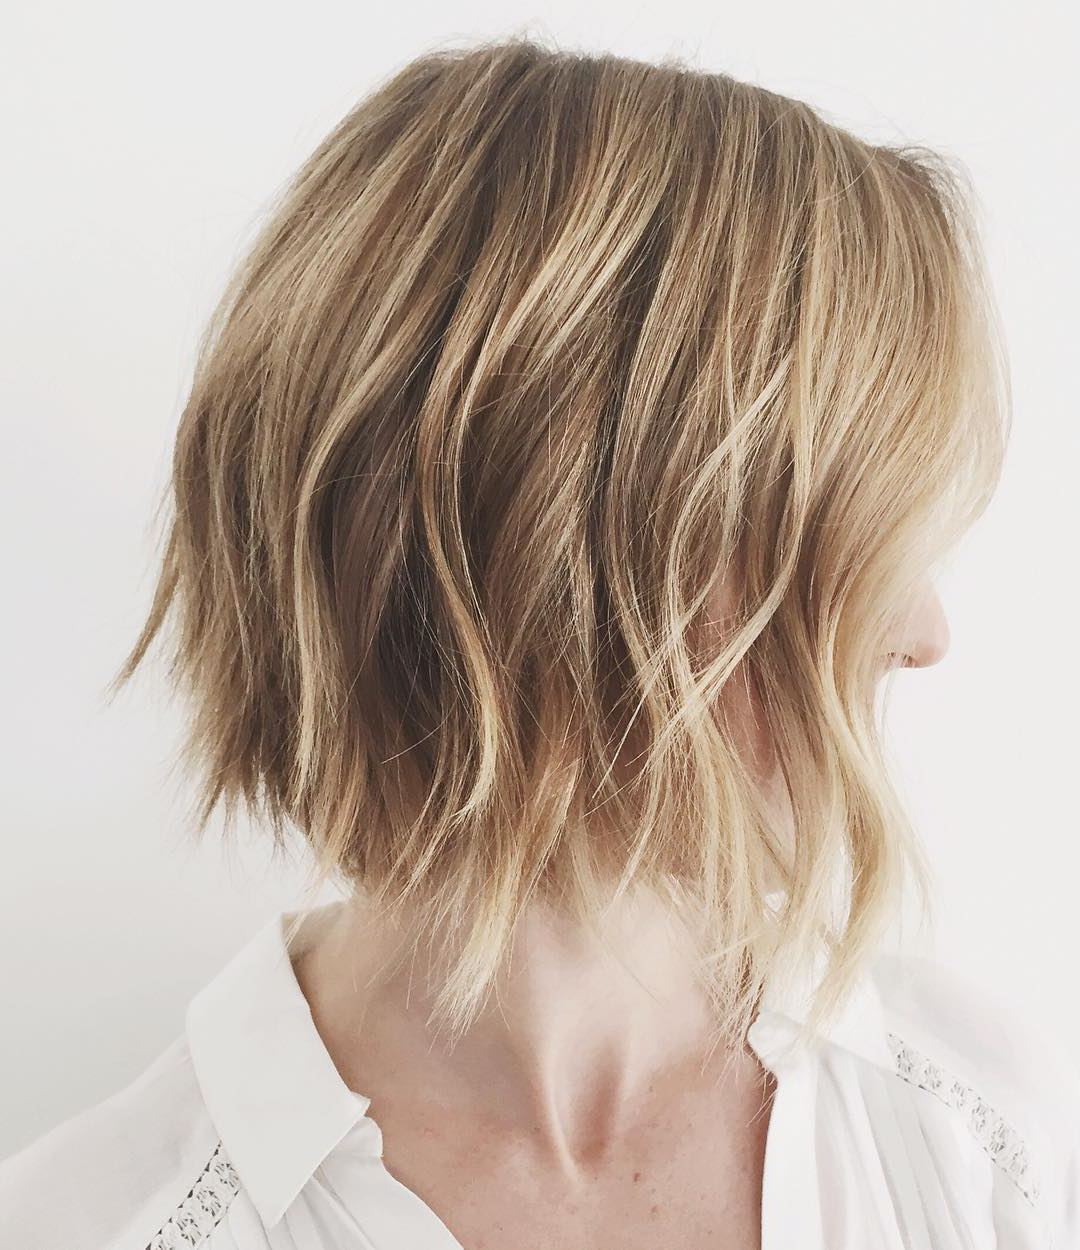 Top 19 Splendiferous Best Short Bob Hairstyles Inspiration Teens With Short Hairstyles For Juniors (View 6 of 25)